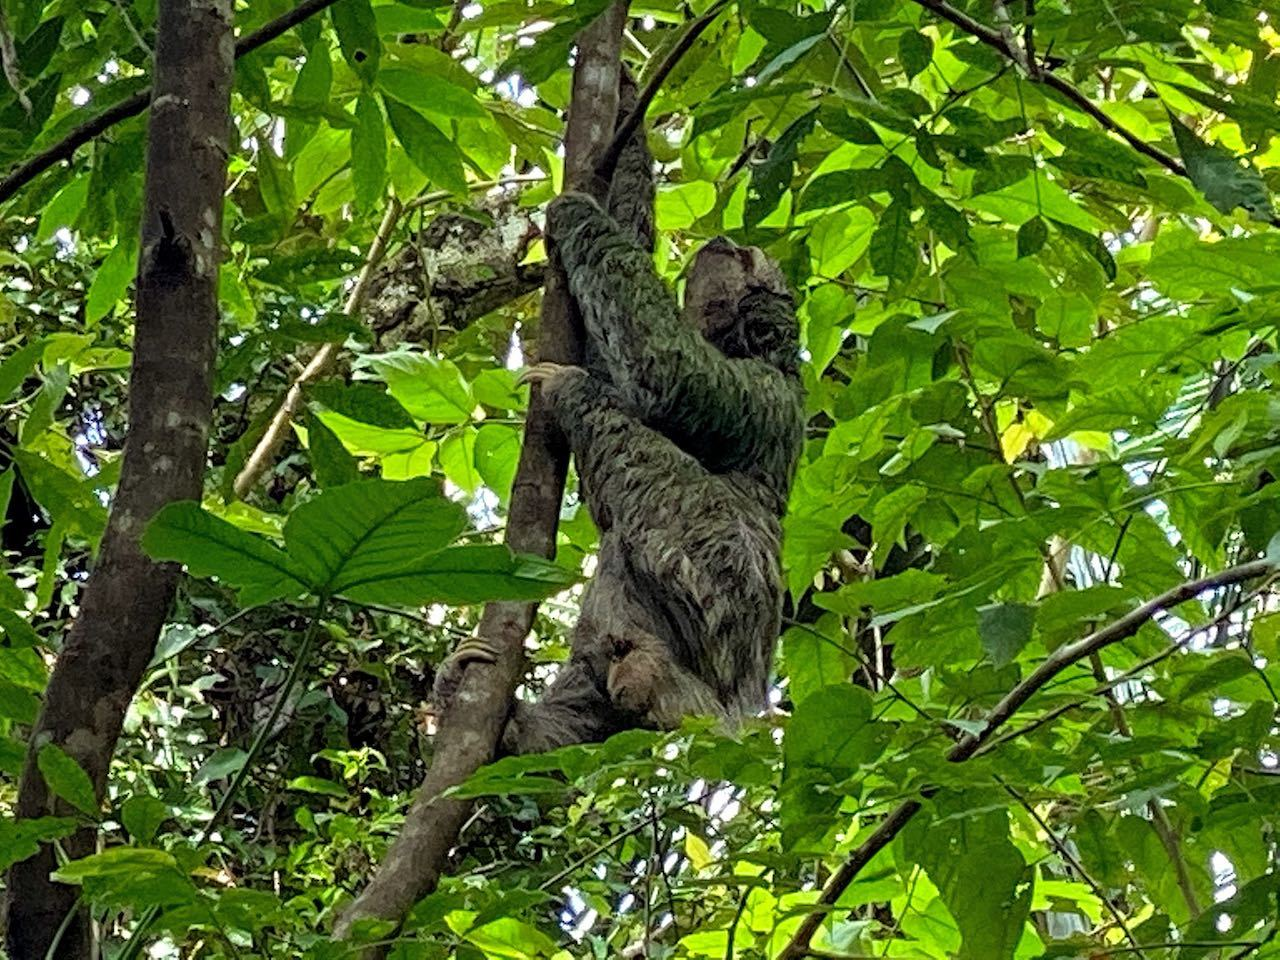 sloth in a tree in costa rica national park